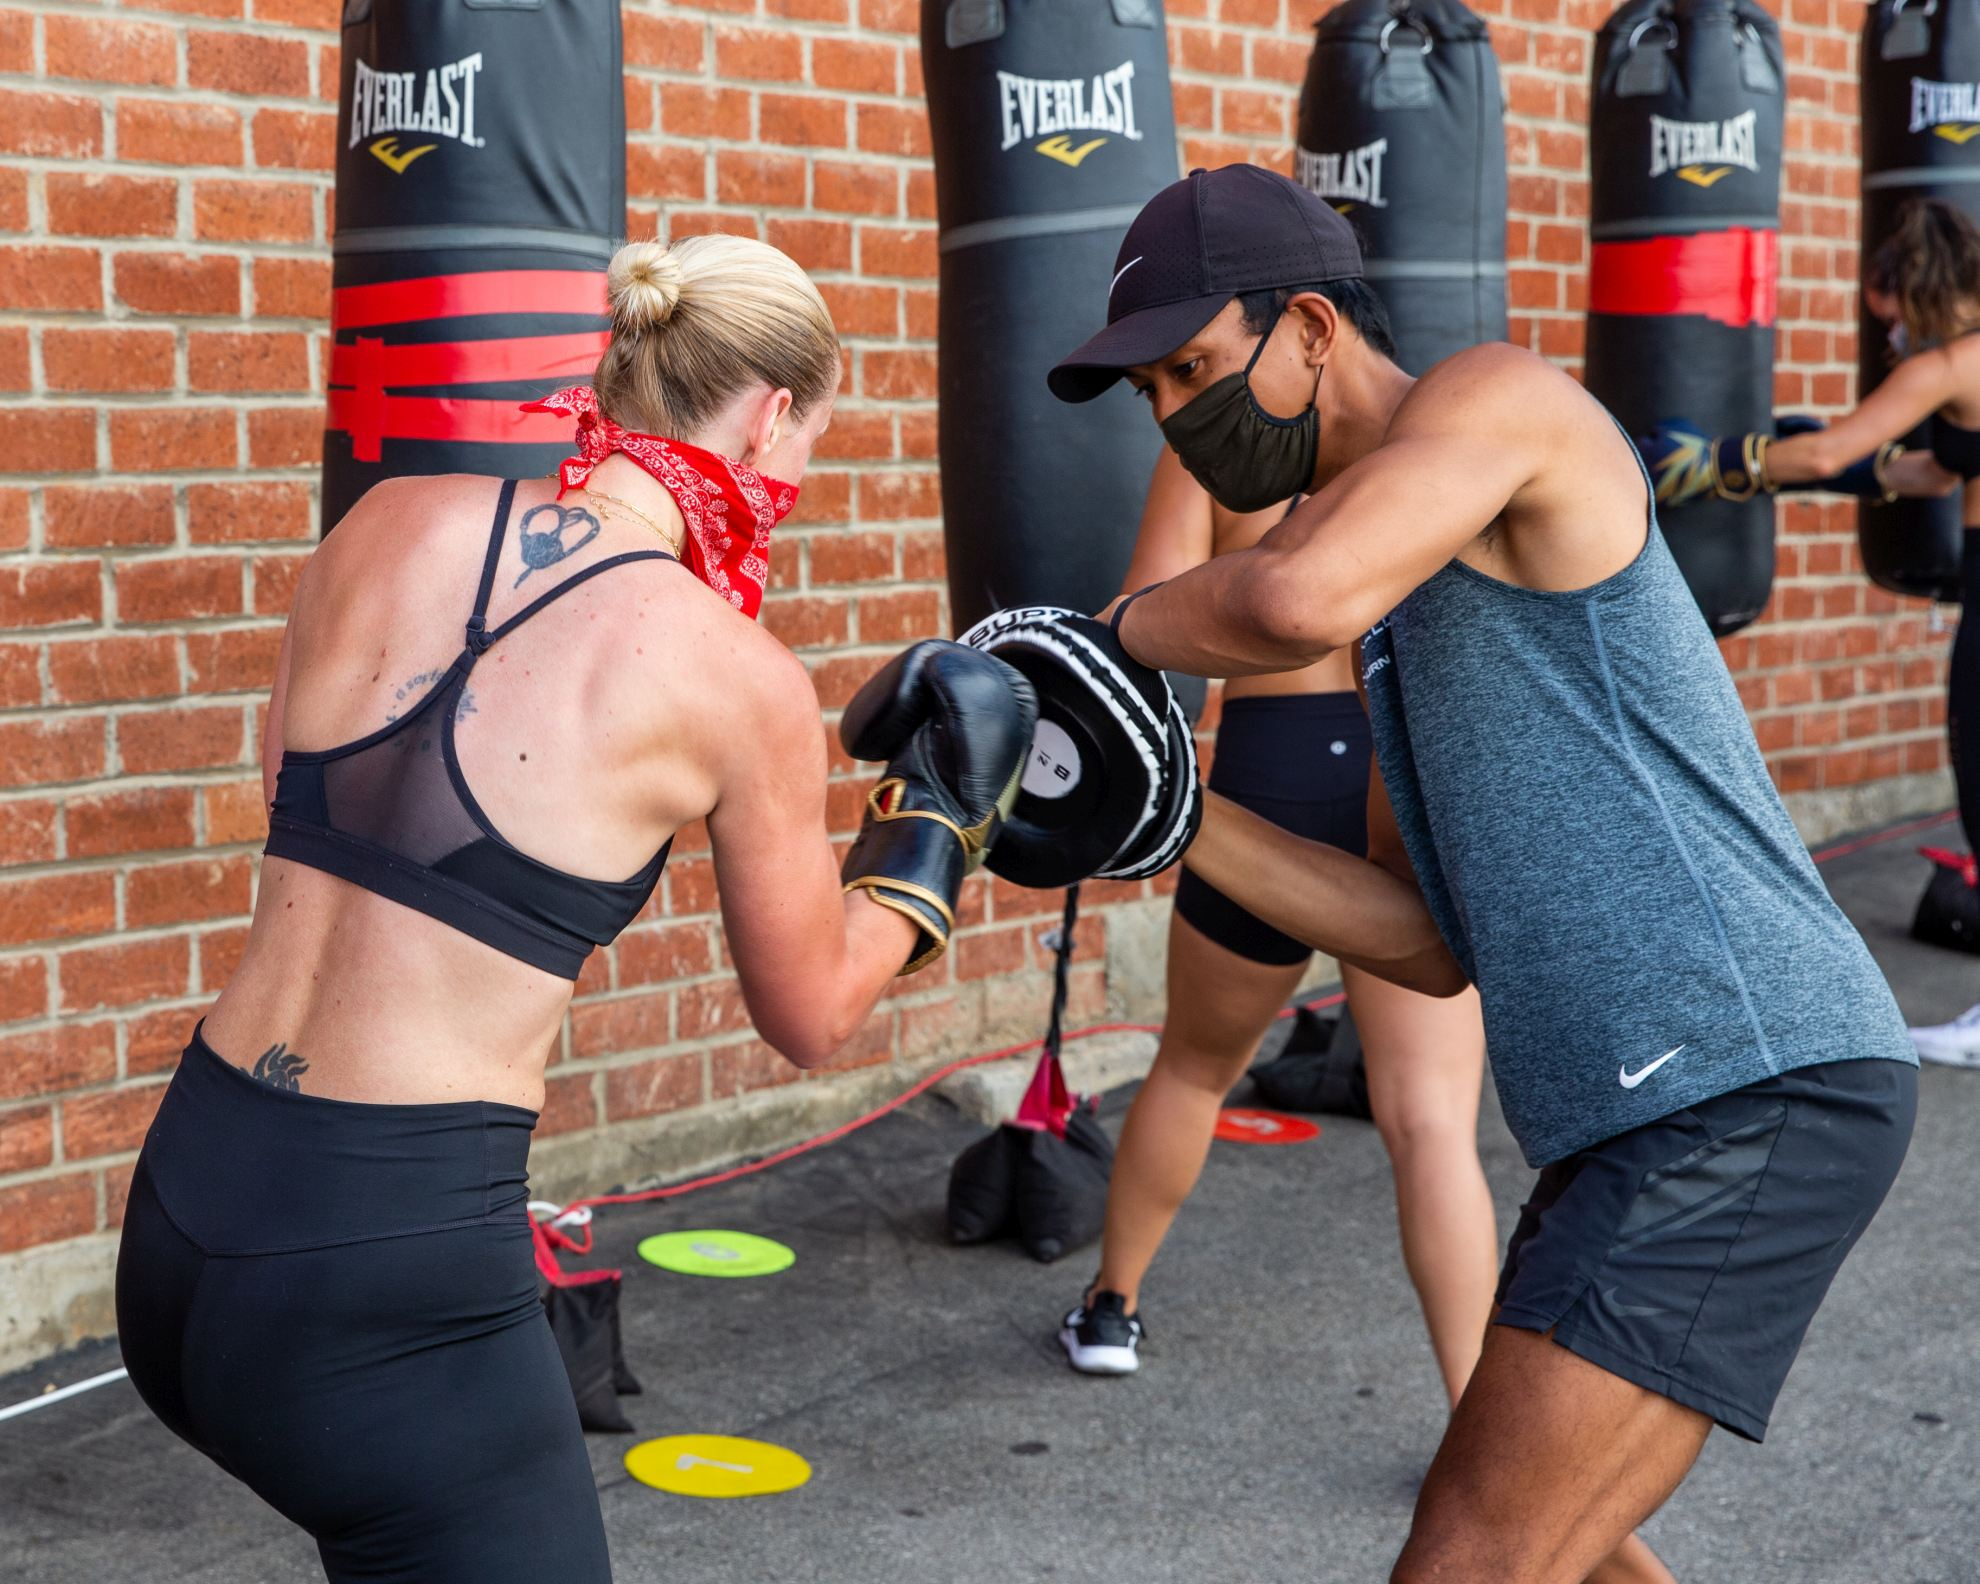 Lincoln Blvd. Santa Monica gym clients outside group class